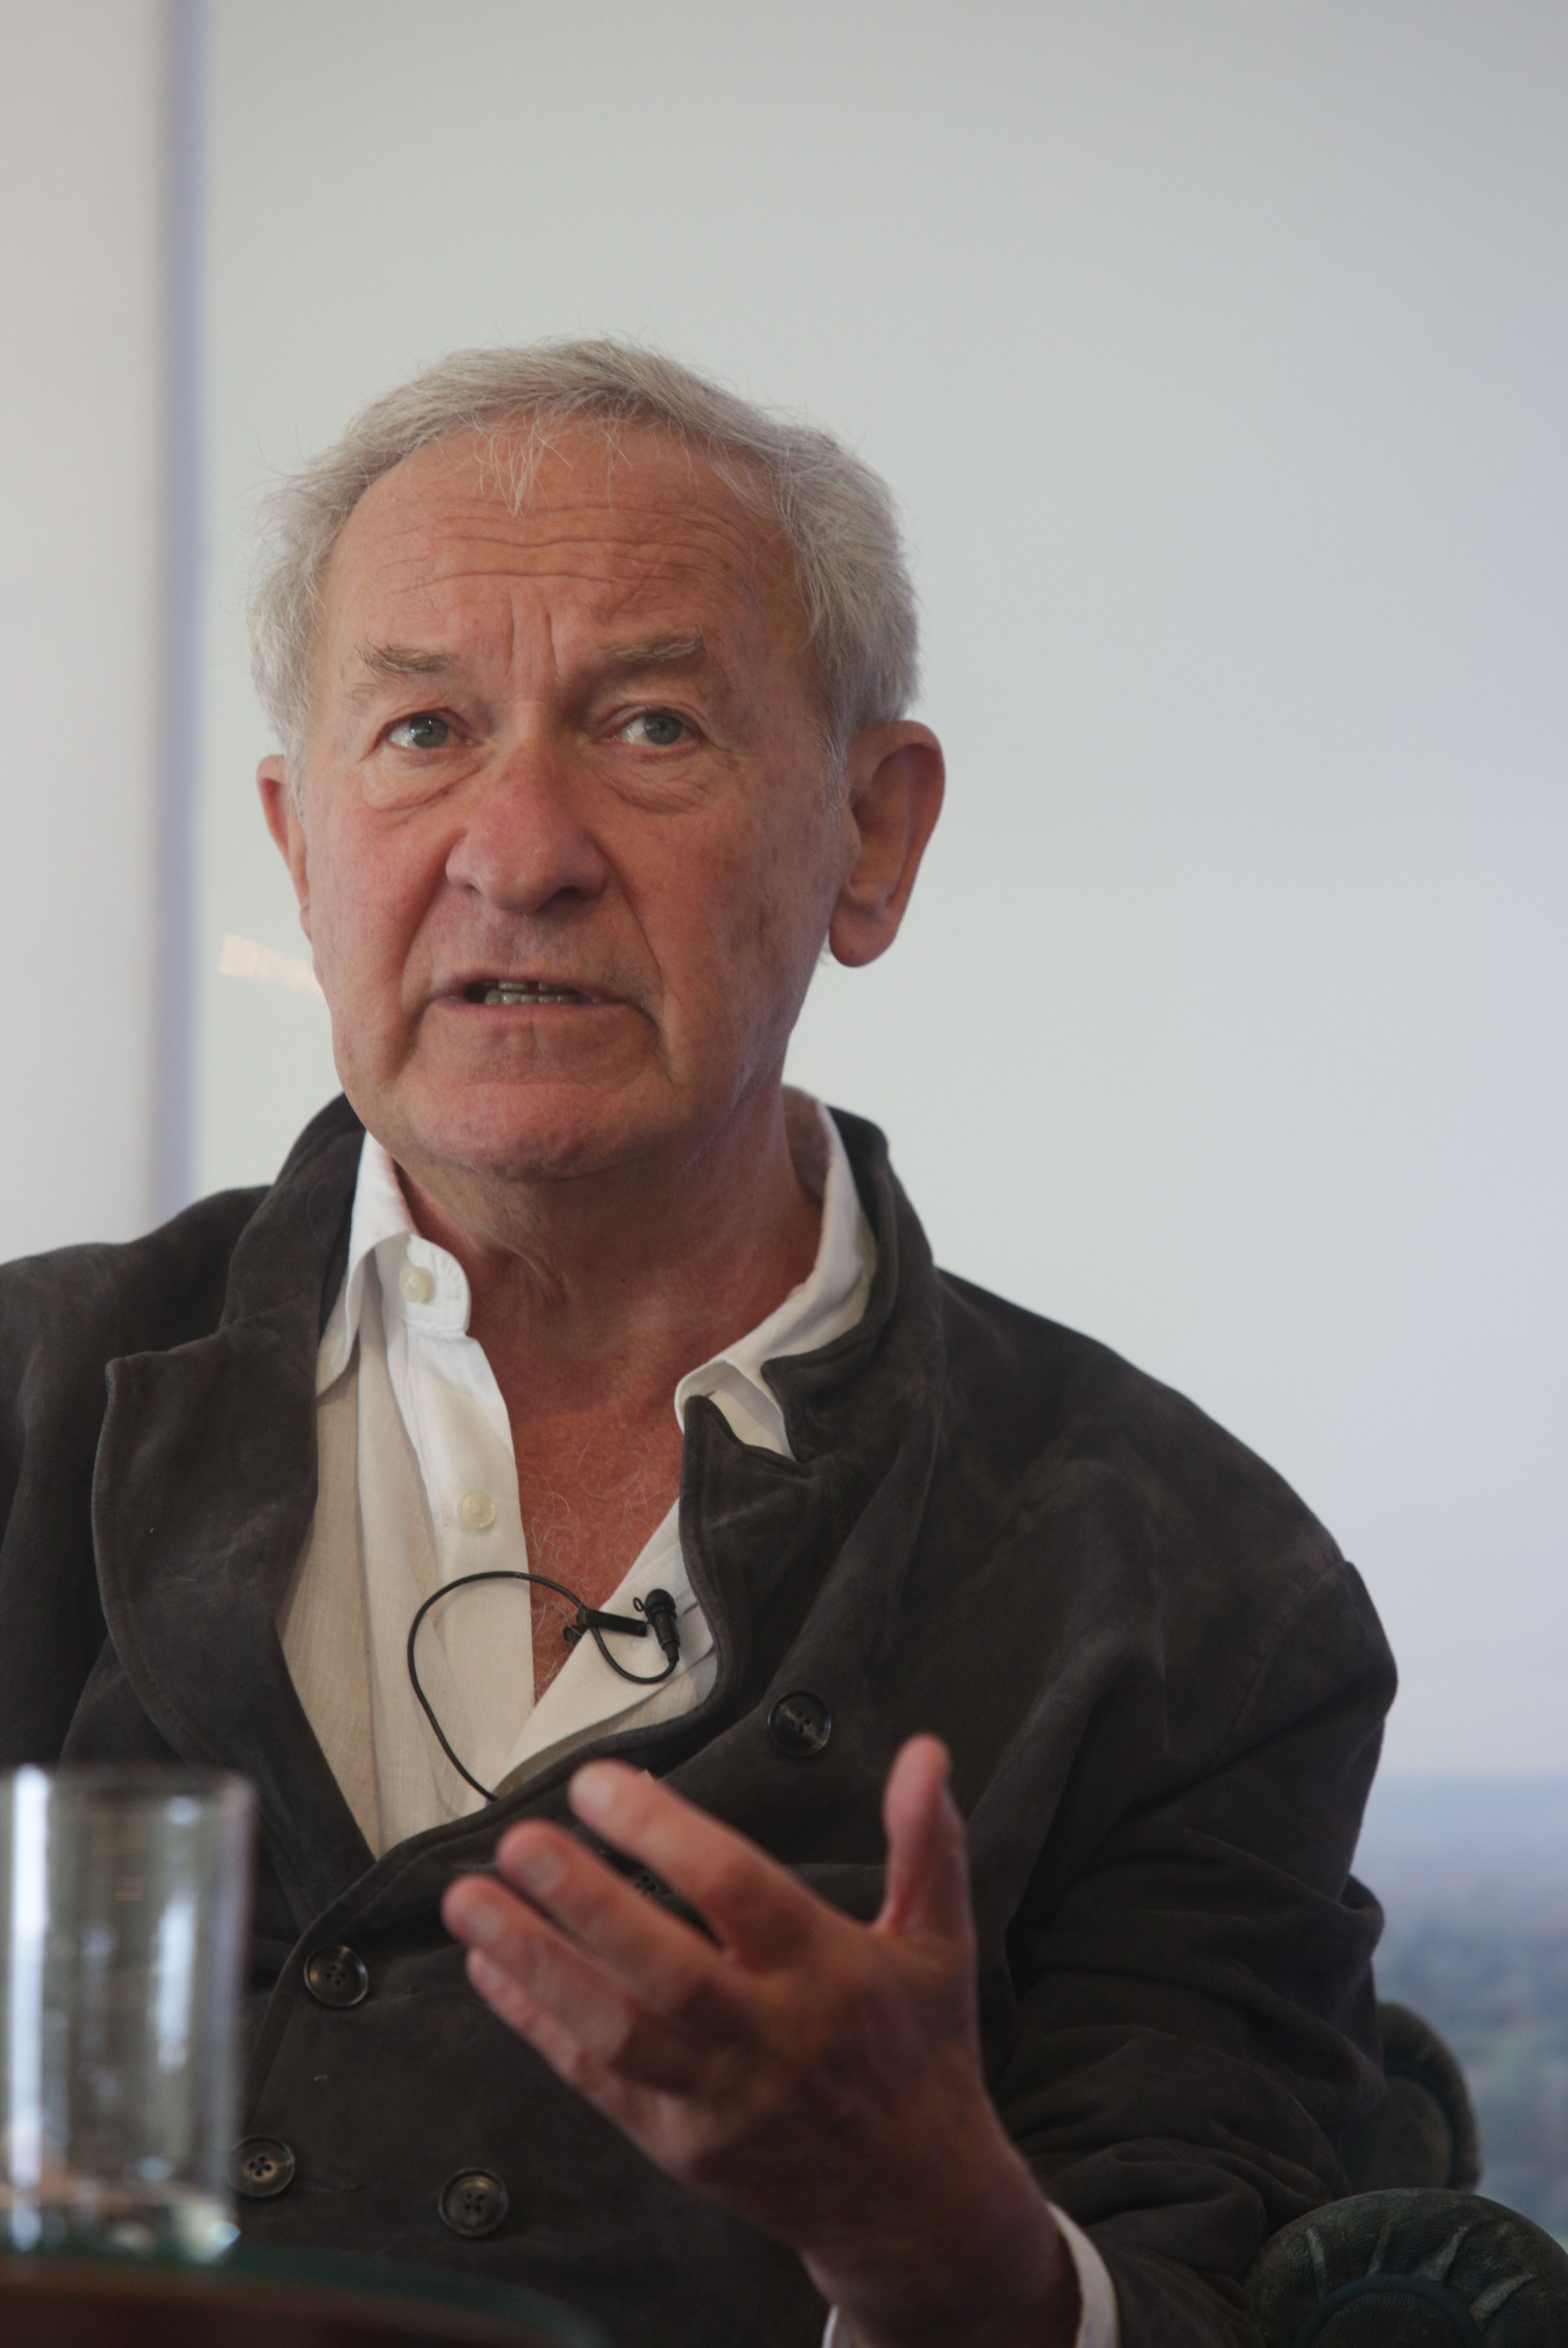 Sir Simon Schama on The Arts Club Stage at Cliveden Literary Festival